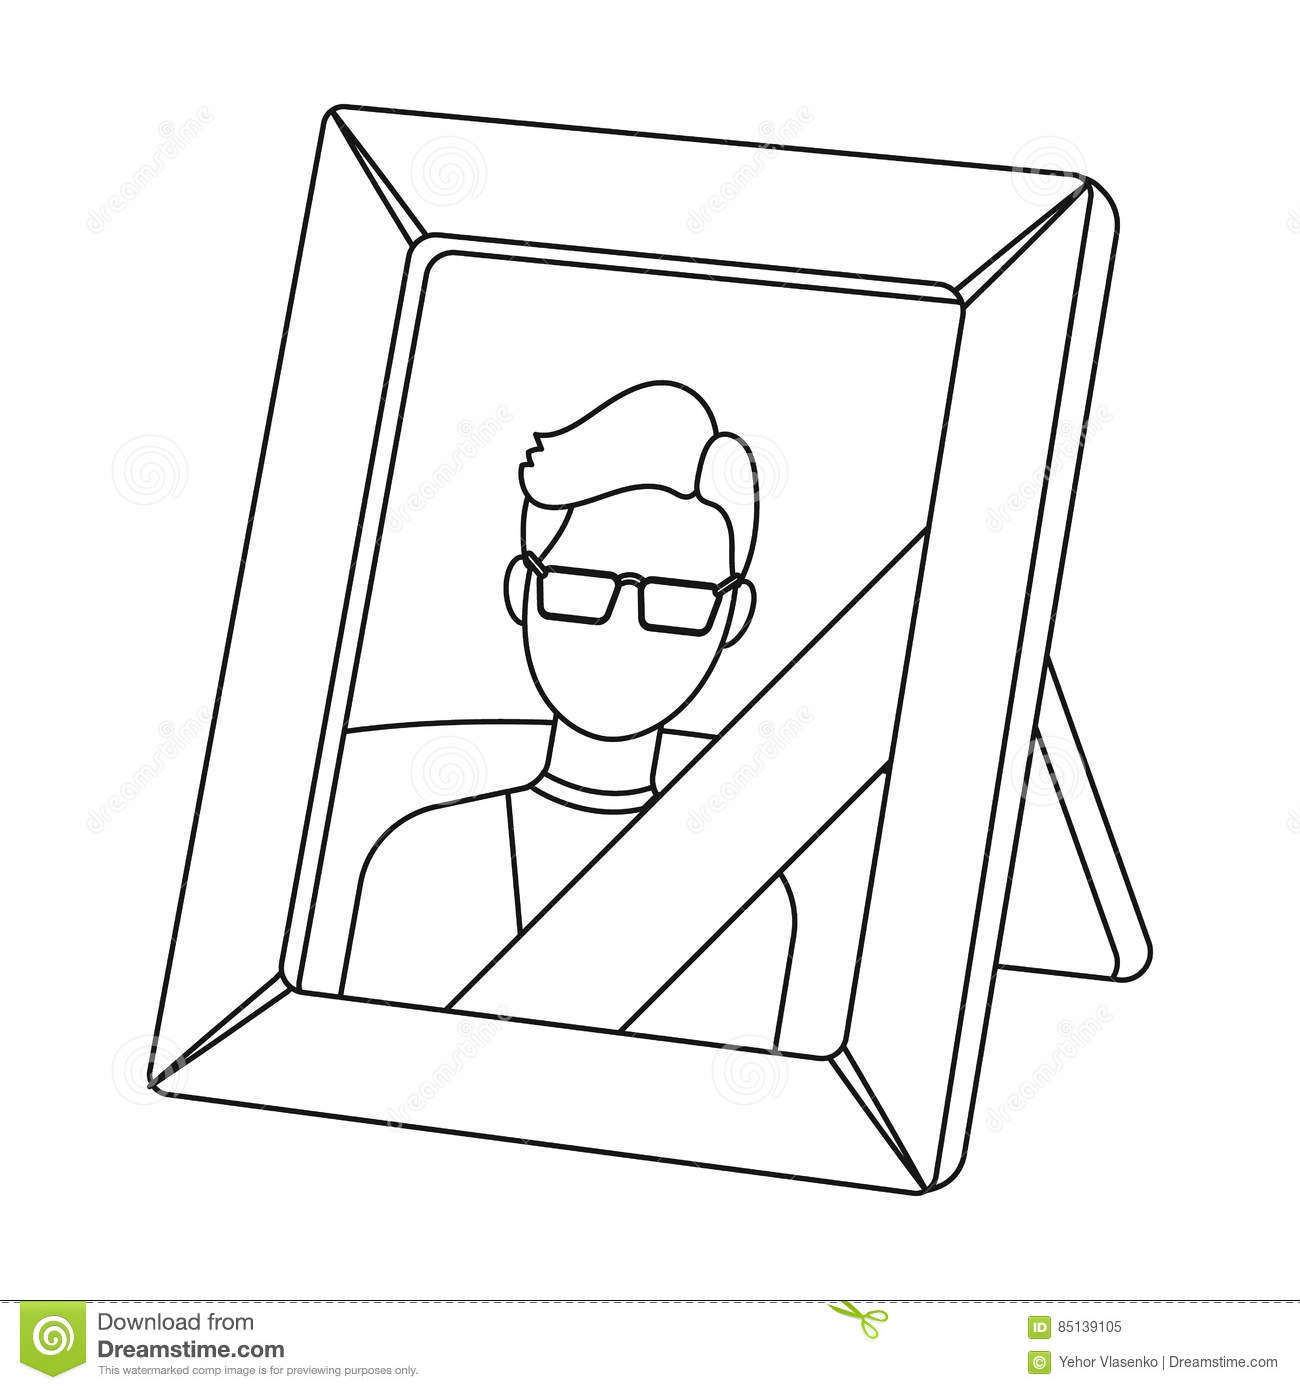 Portrait of deceased person icon in outline style isolated on white background. Funeral ceremony symbol stock vector